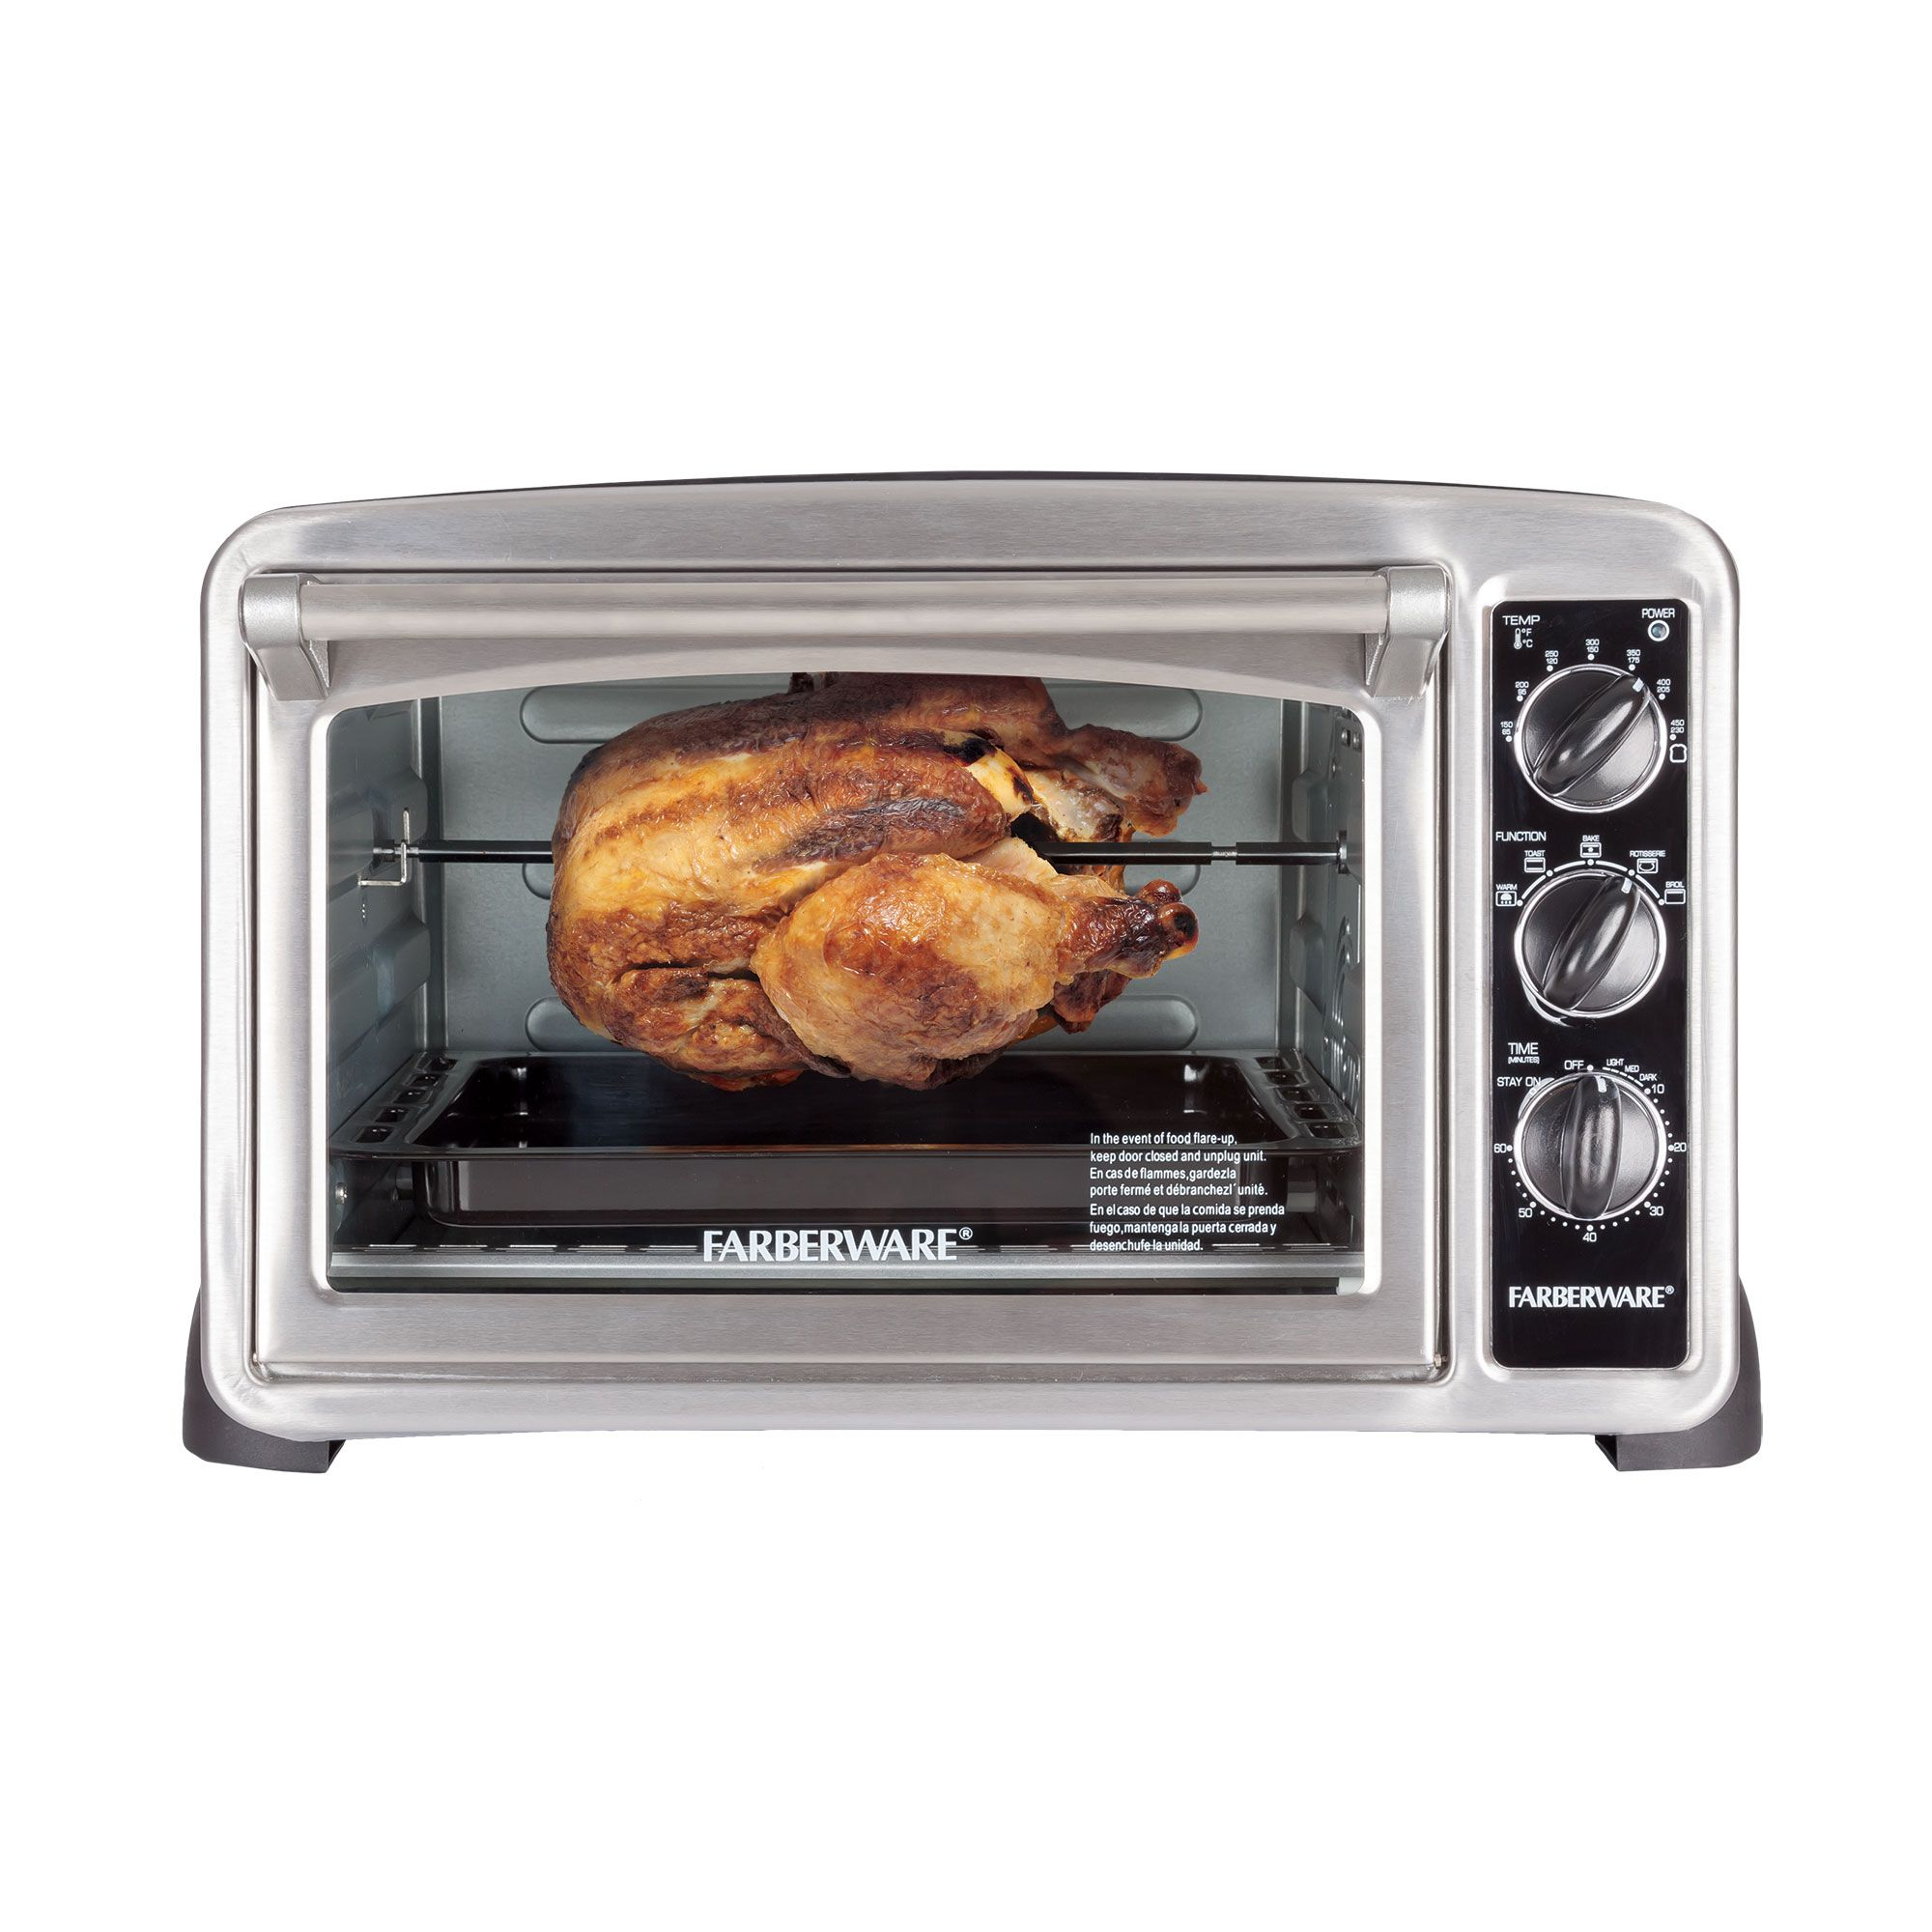 Countertop Convection Oven Farberware Love This Helps To Make